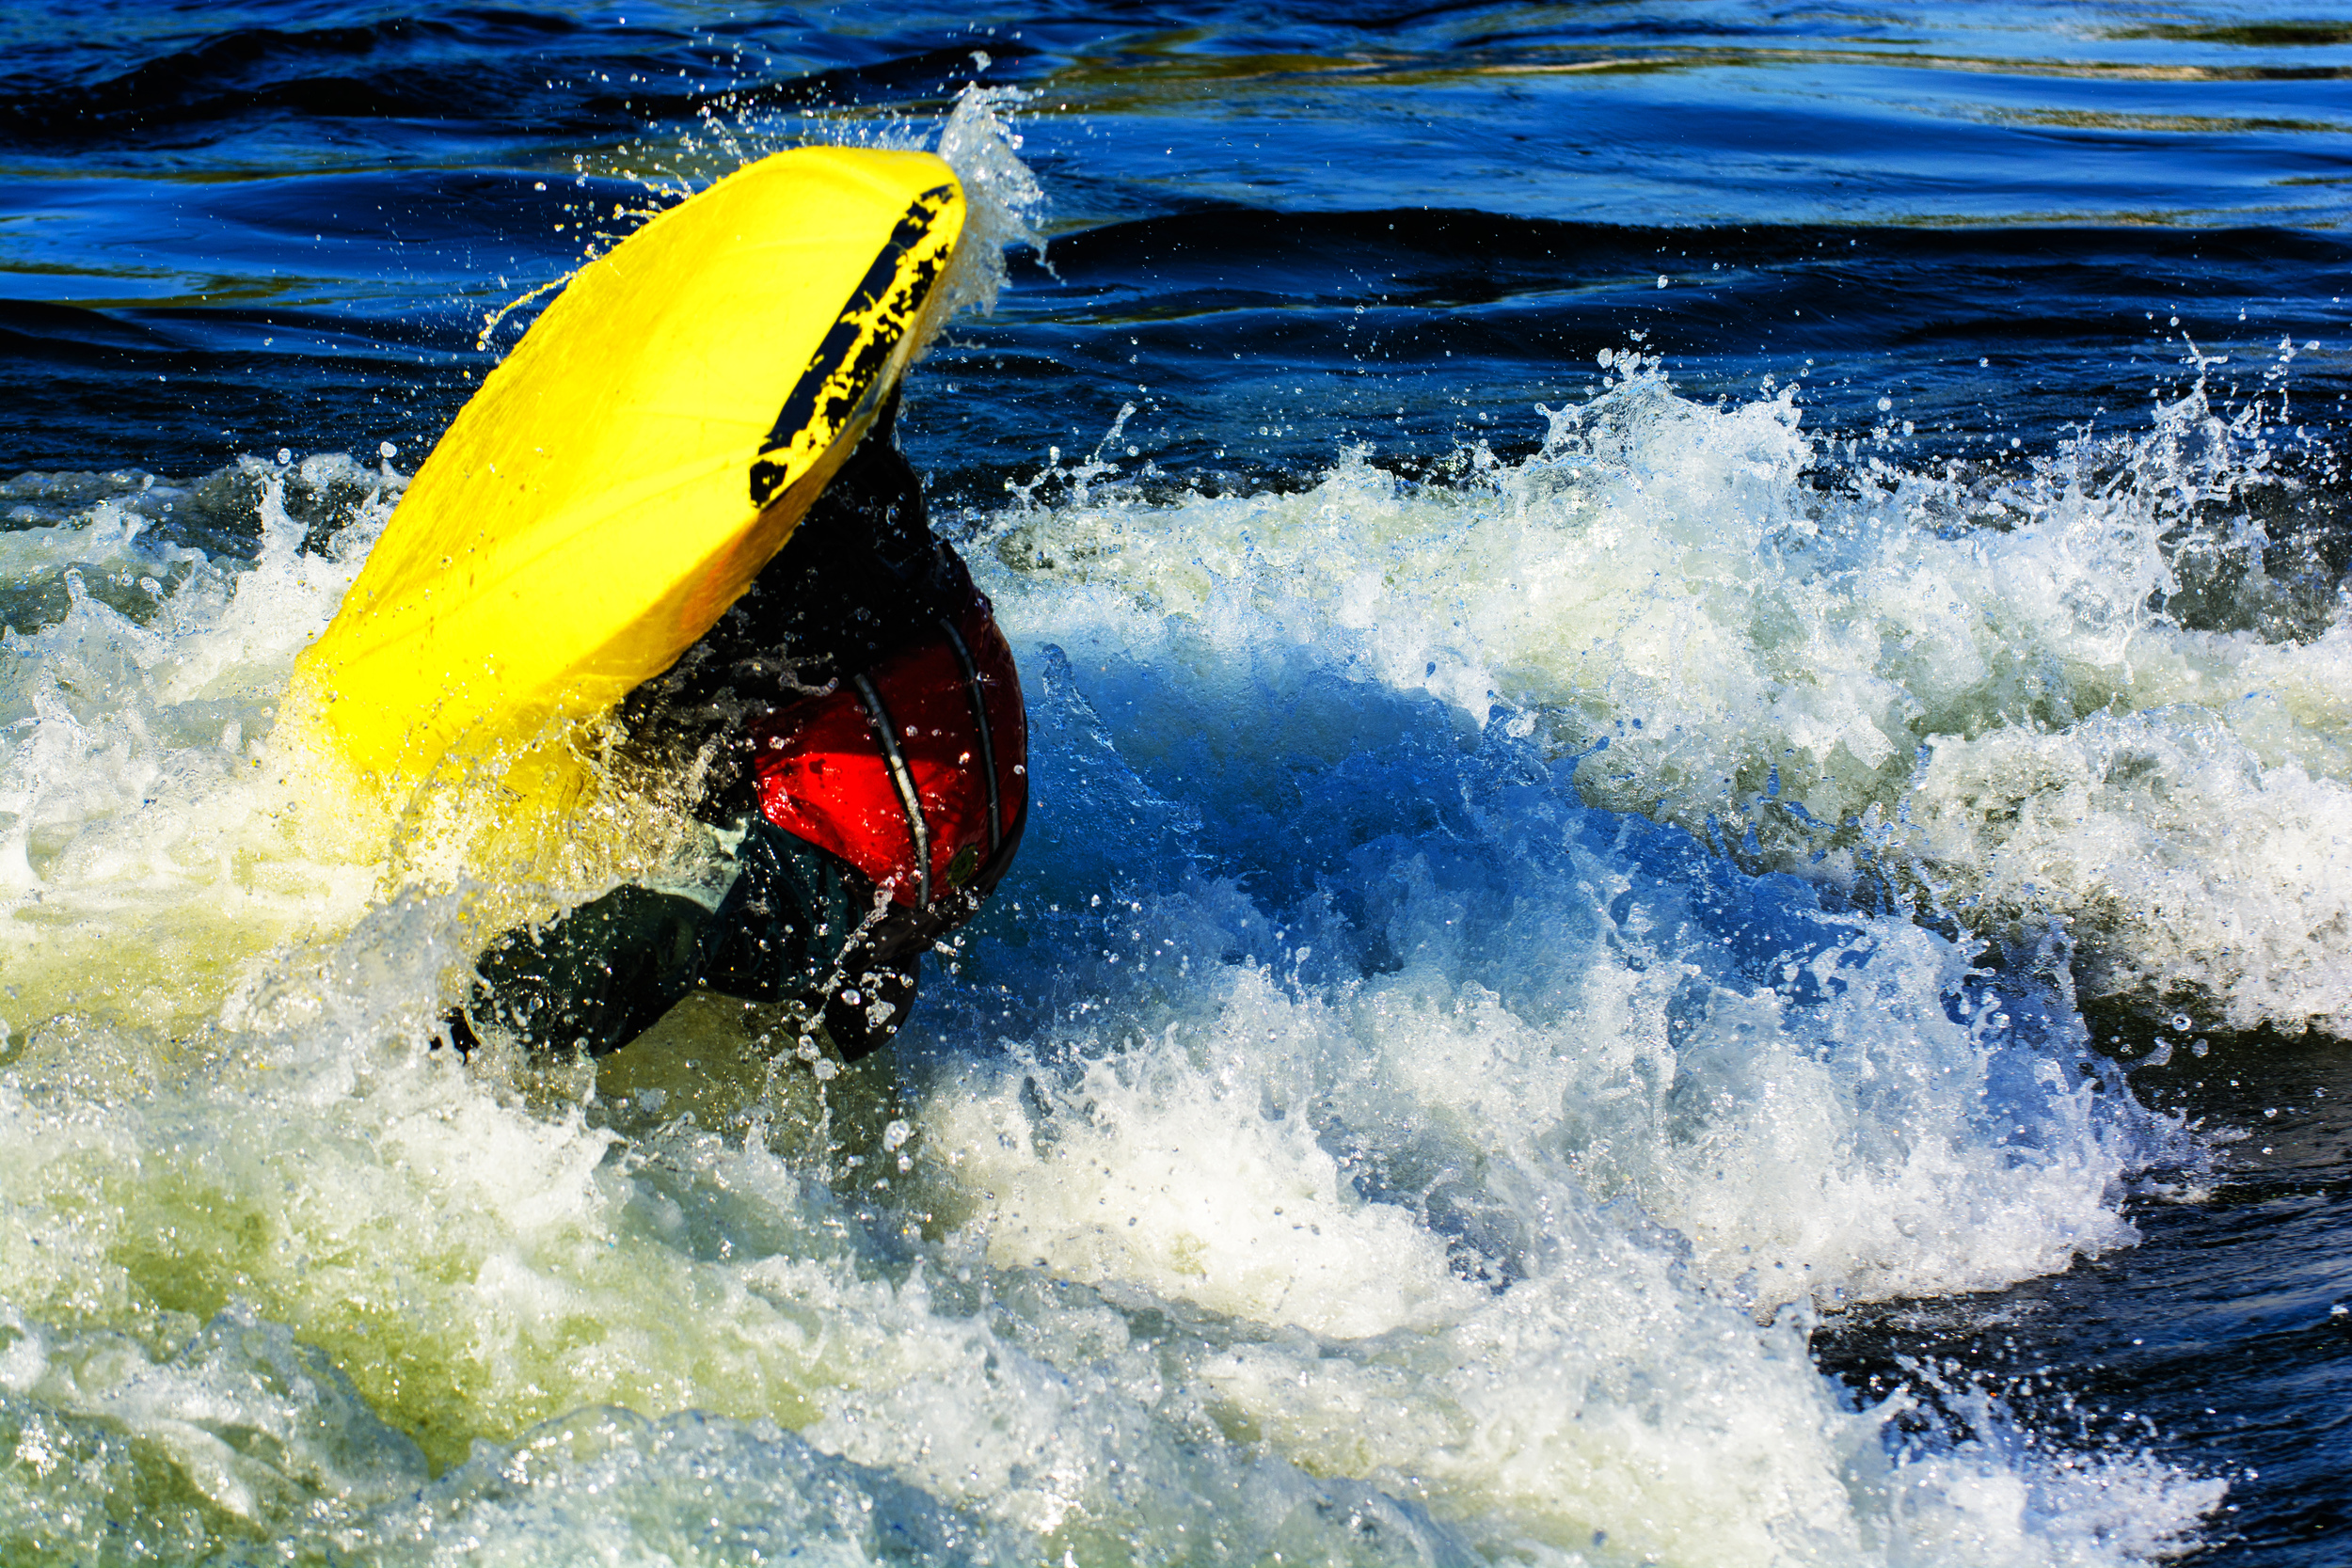 """6/29: Boise Whitewater River Park, super cool feature right in downtown! This boater is throwing what is known as a """"loop,"""" essentially a forward flip while in a boat, he is mid loop."""